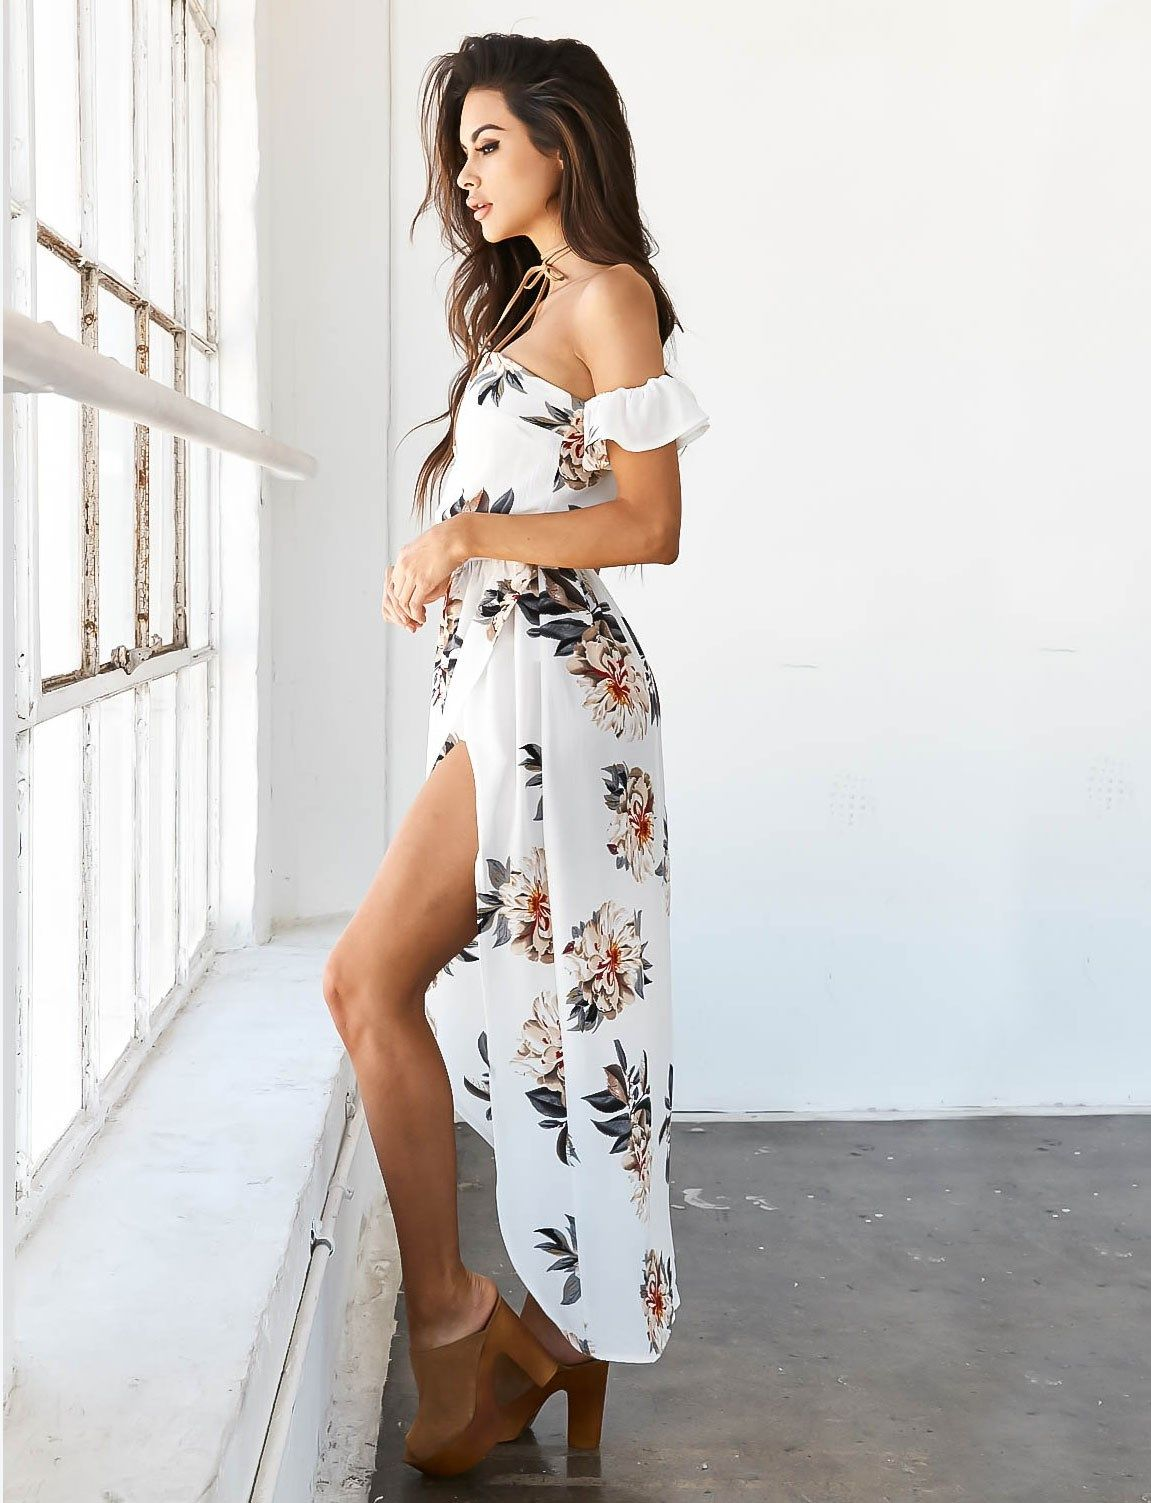 Pre-Order Tiger Mist Sunkissed Dress | Style | Pinterest | Tigers ...